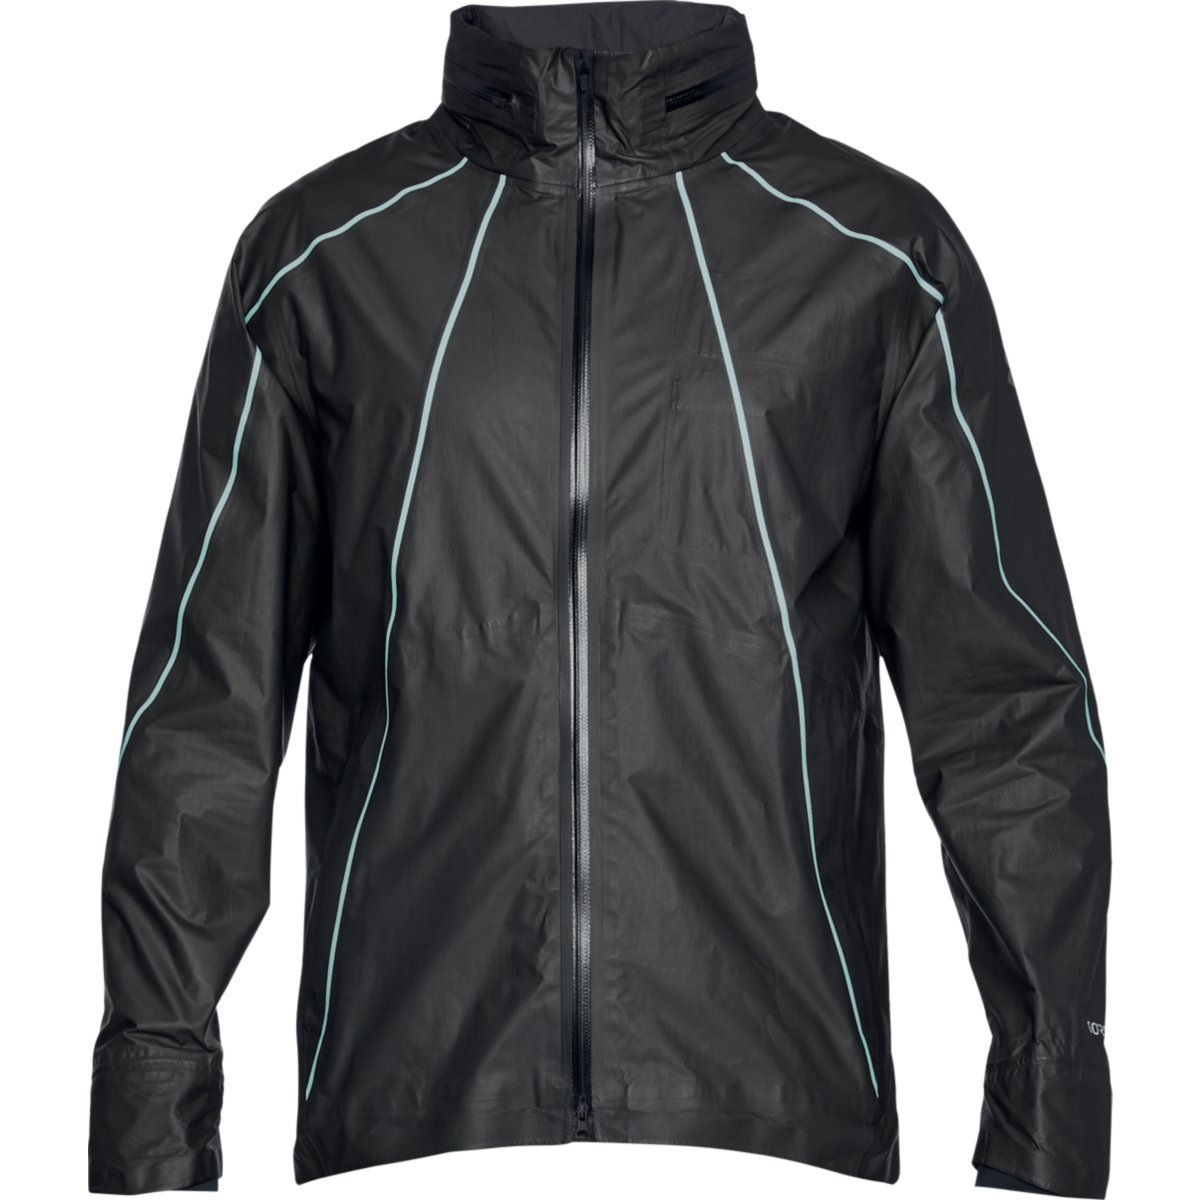 Under Armour Under Armour Accelerate Gore-Tex Long Jacket   Jackets